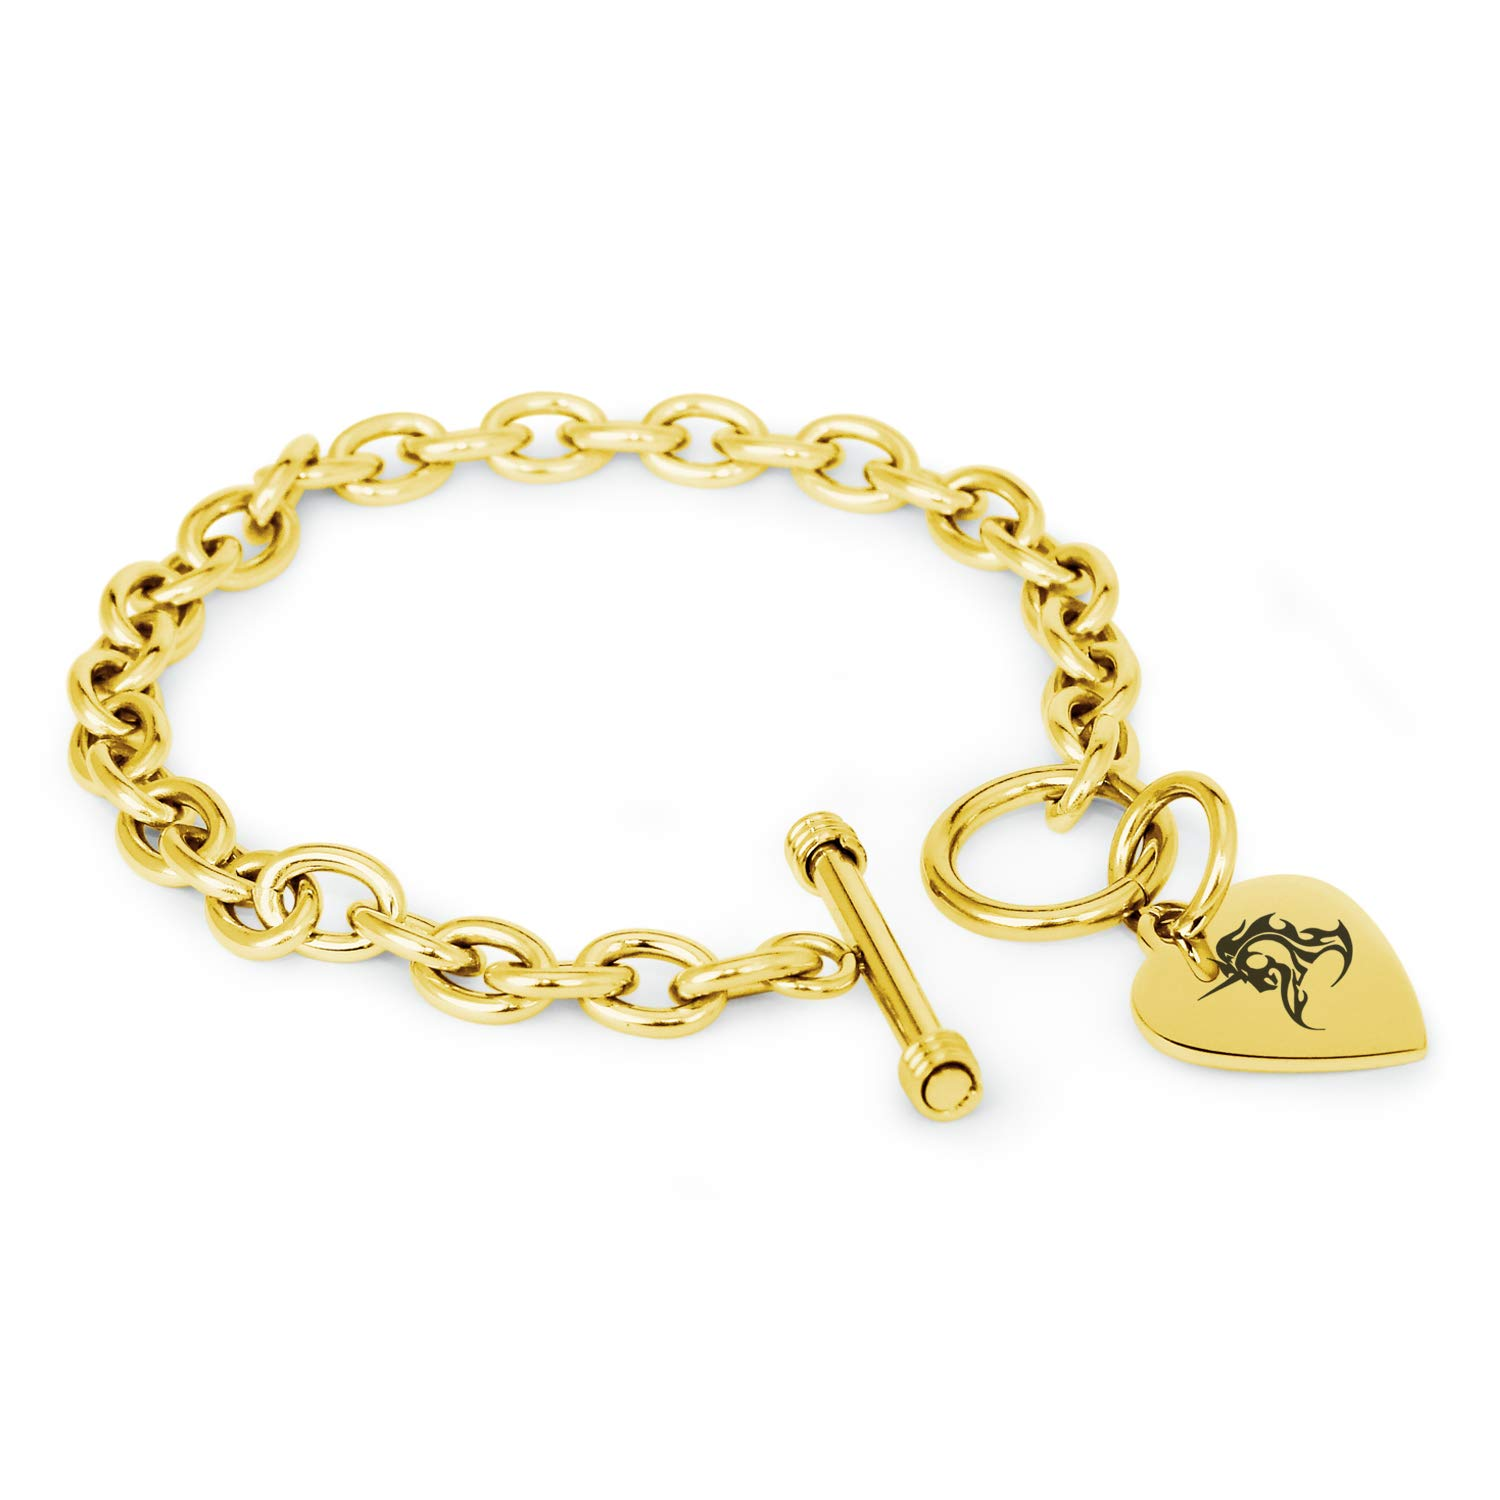 Tioneer Stainless Steel Tribal Unicorn Heart Charm Toggle Bracelet /& Necklace